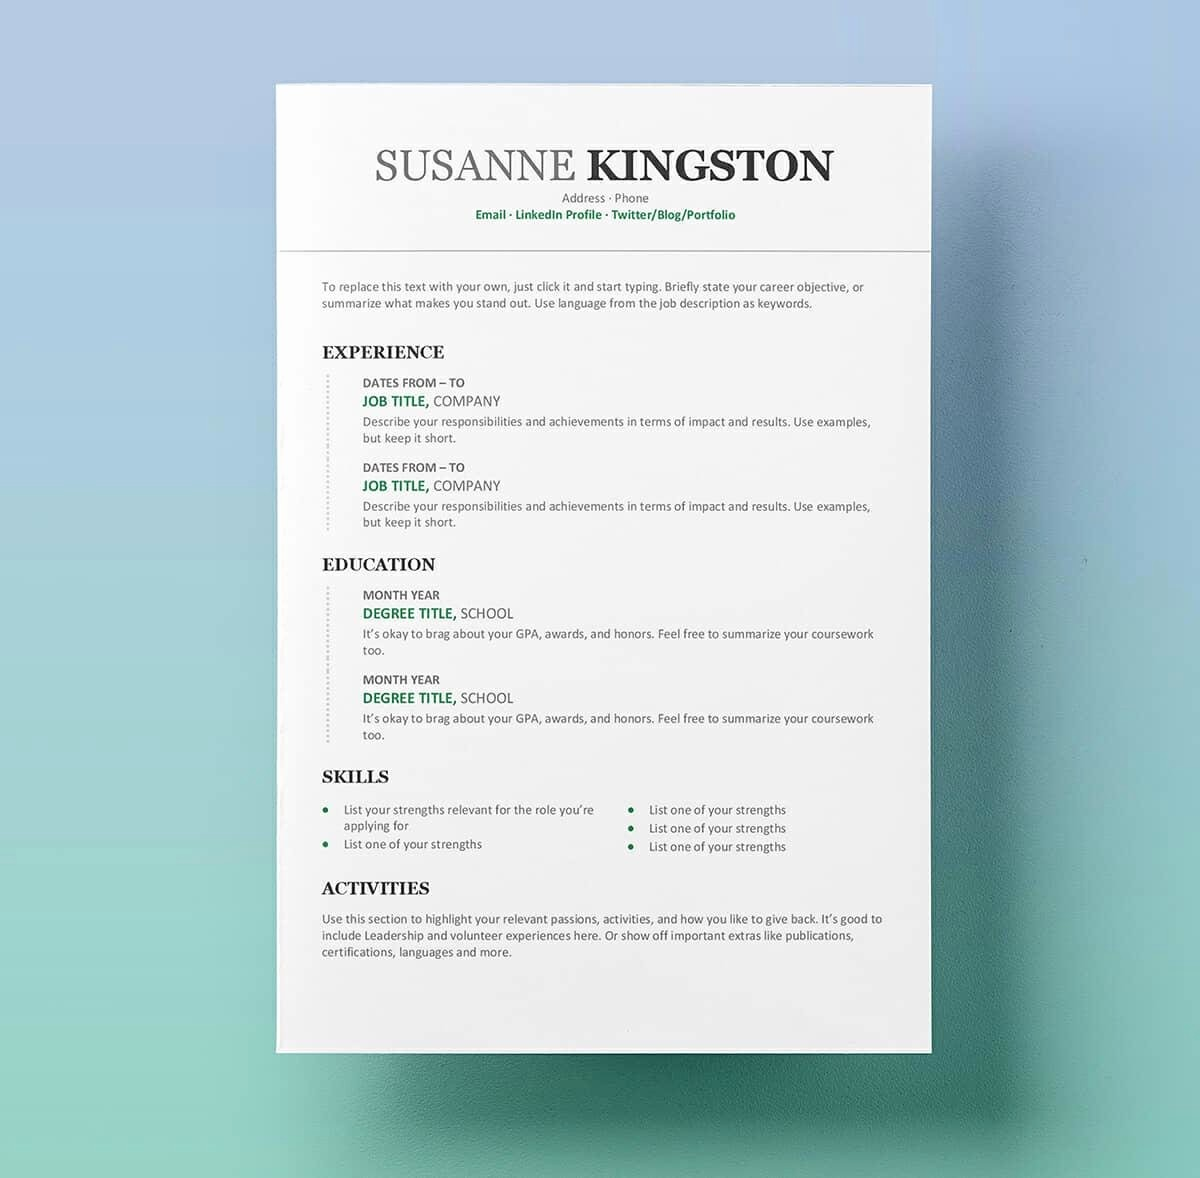 Cv format Samples In Word New Resume Templates for Word Free 15 Examples for Download